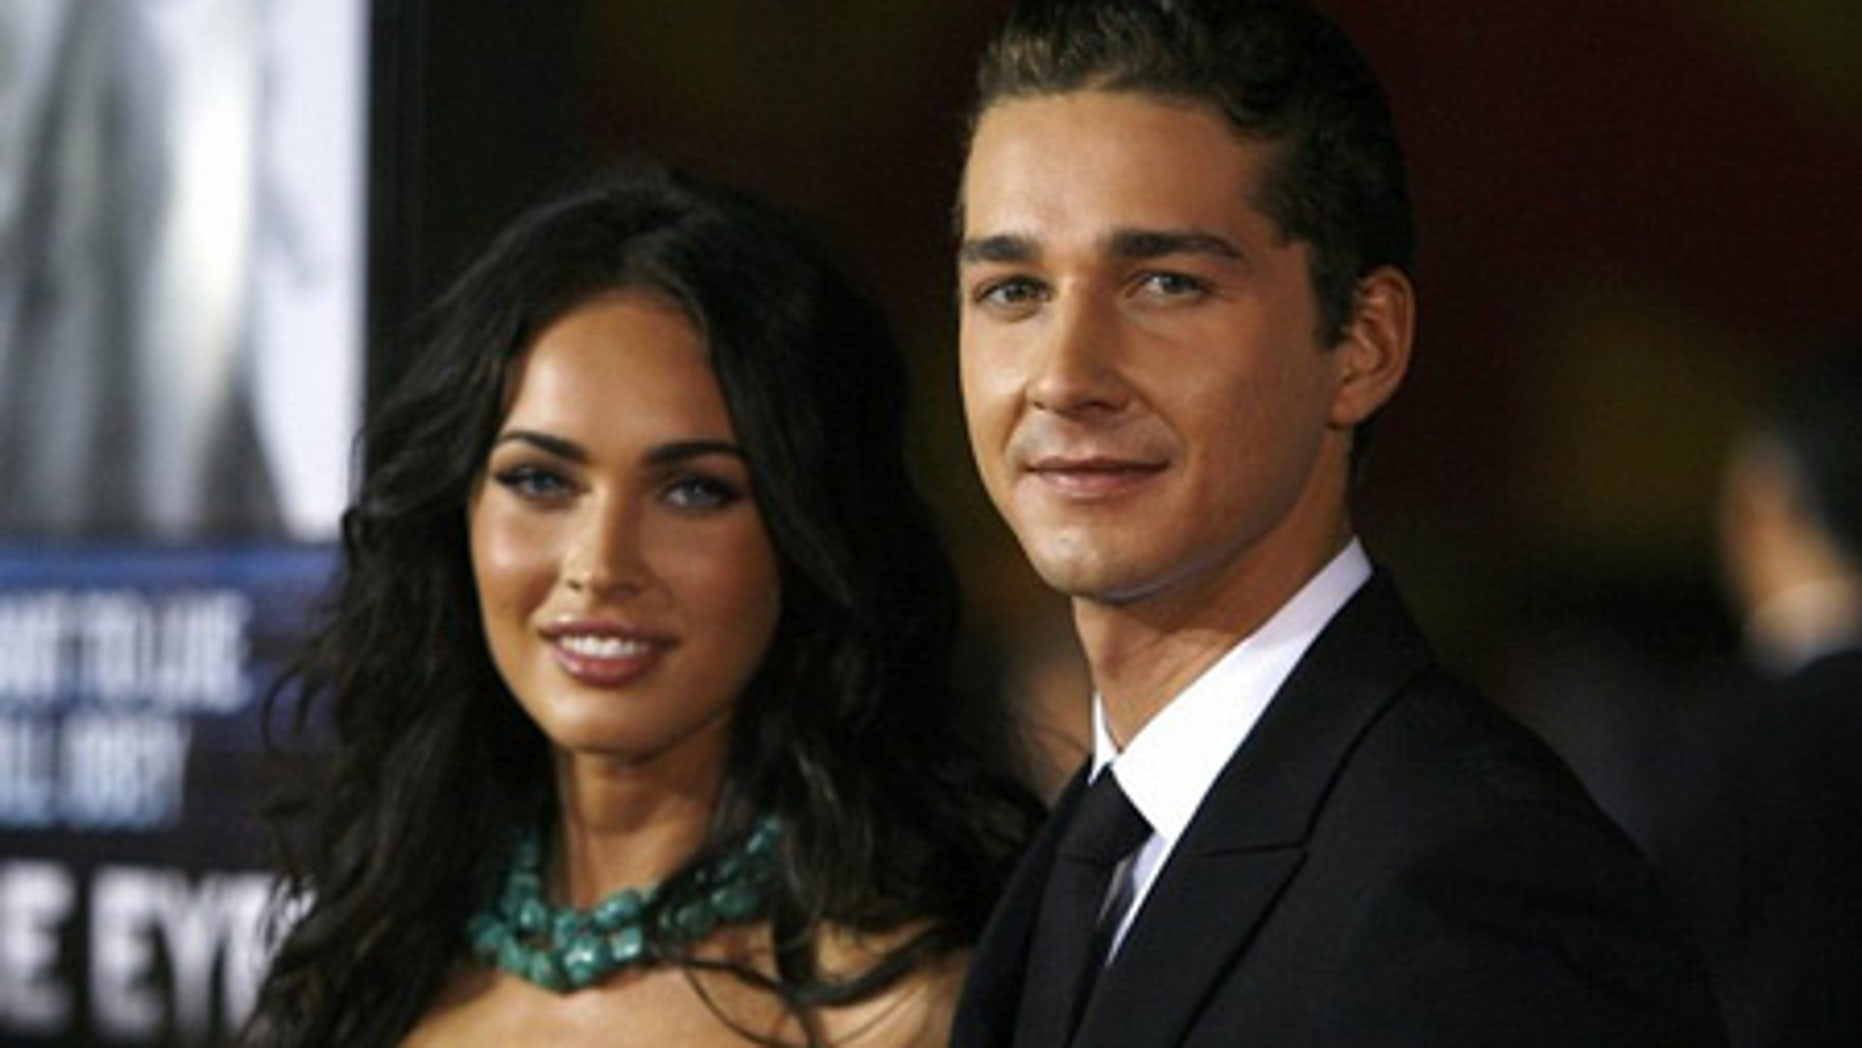 Megan Fox reveals that she had a fling with former co-star Shia LaBeouf.